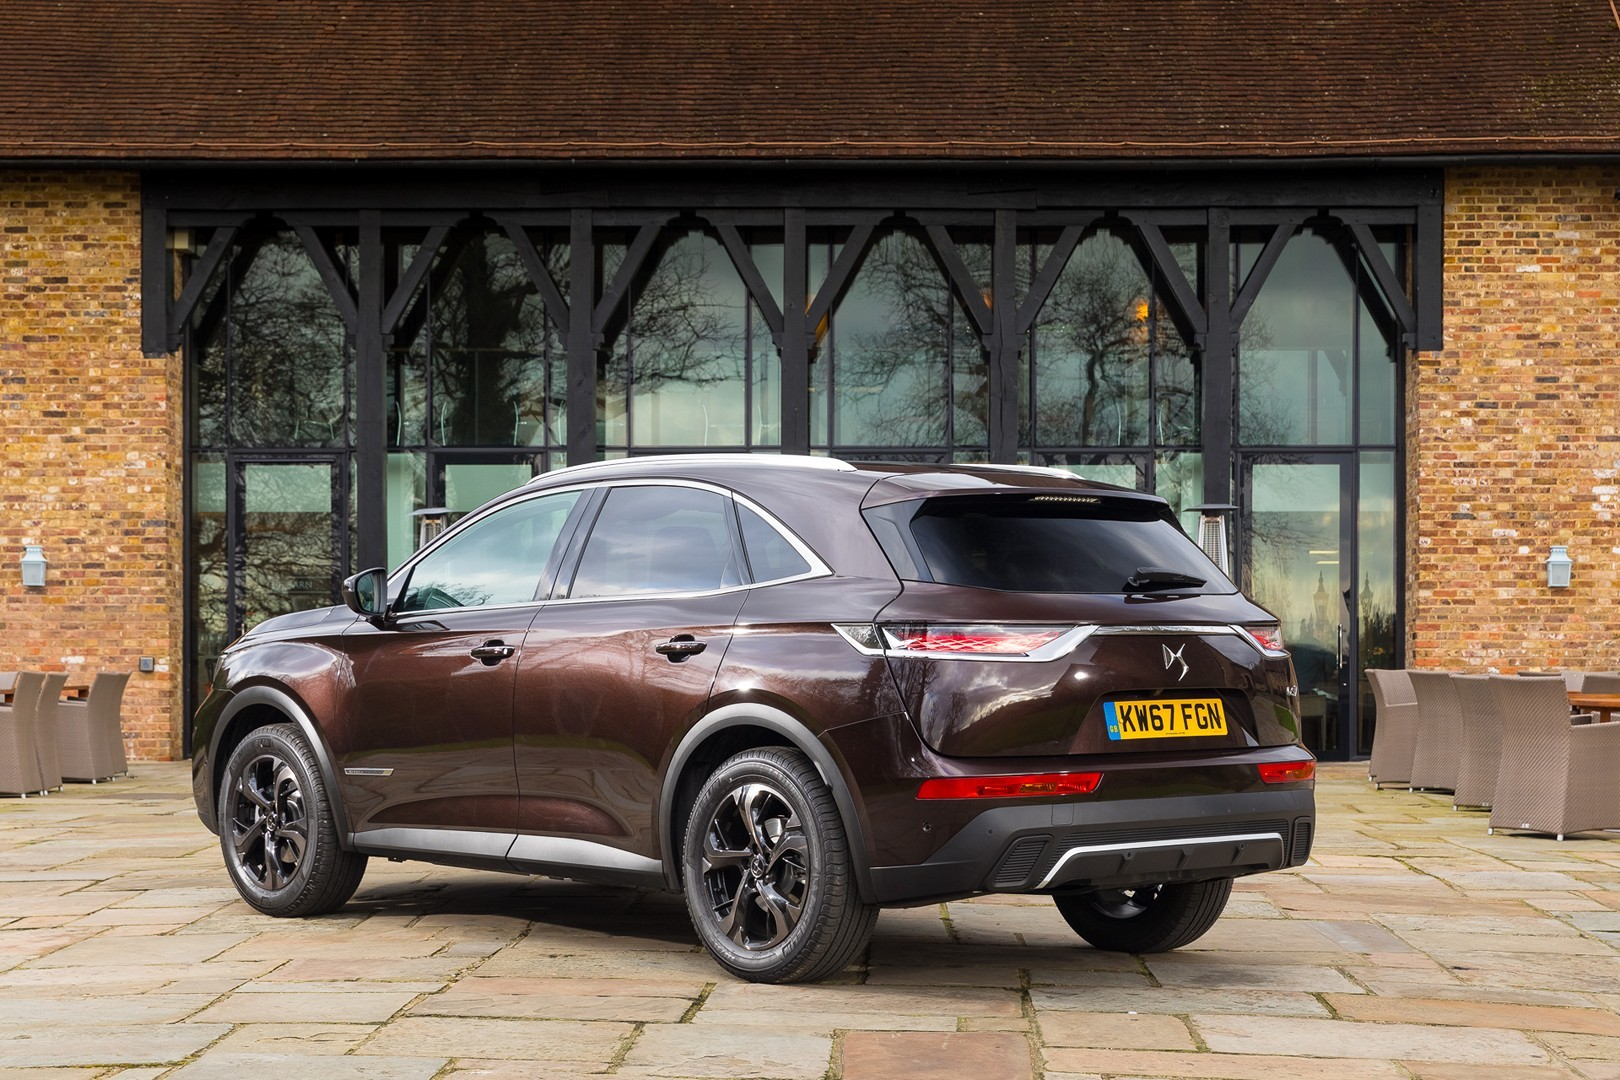 citroen ds hybrid html with Ds7 Crossback Arrives In Britain Shows Every Toy In Full Photo Gallery 123337 on Citroen Wild Rubis in addition Citroen Ds4 Hybrid 2012 Id 6647 furthermore 191002 citroen ds5 hybrid4 additionally Citroen Ds5 Precios En Espana as well Harley Davidson Fat Boy.